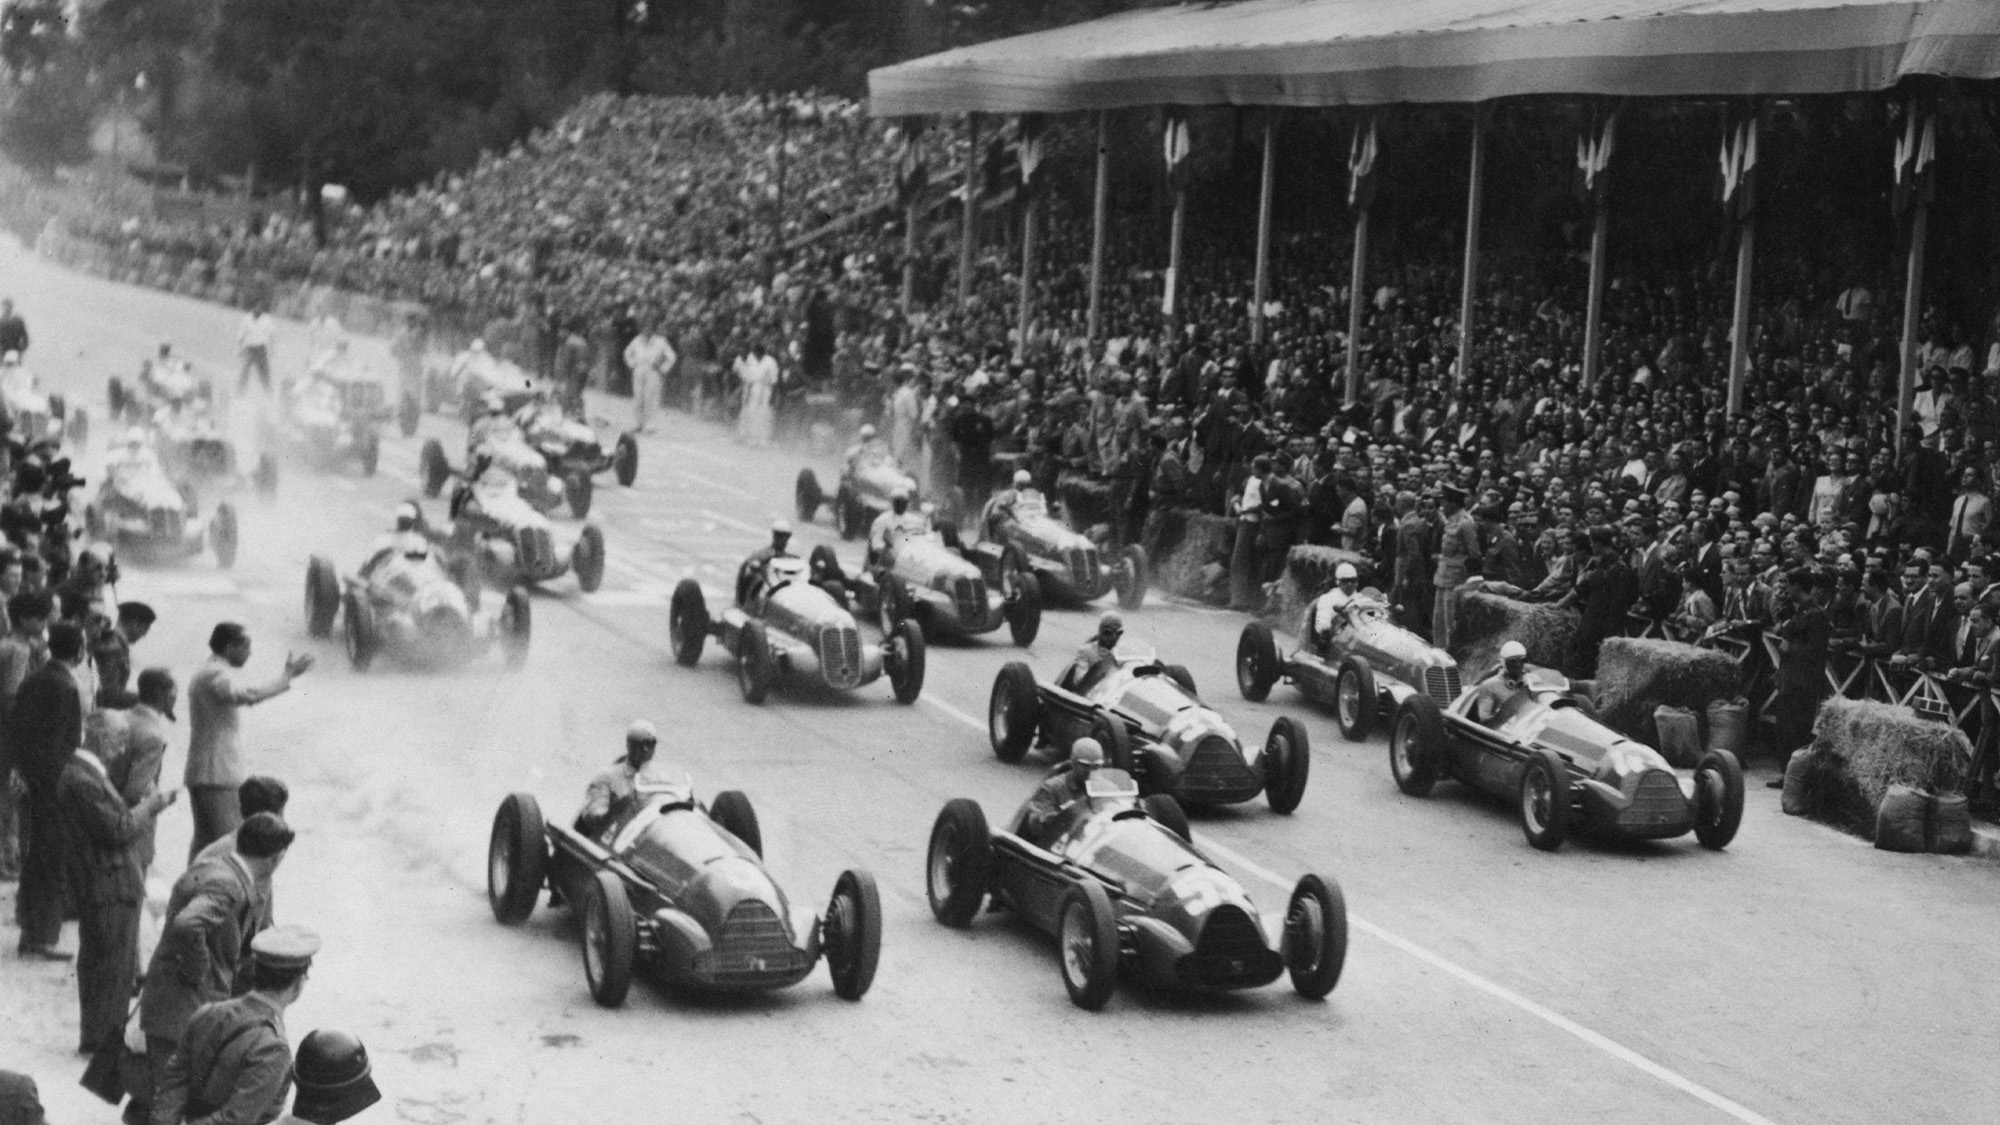 Jean-Pierre Wimille and Giuseppe Farina lead at the start of the 1946 Turin Grand prix